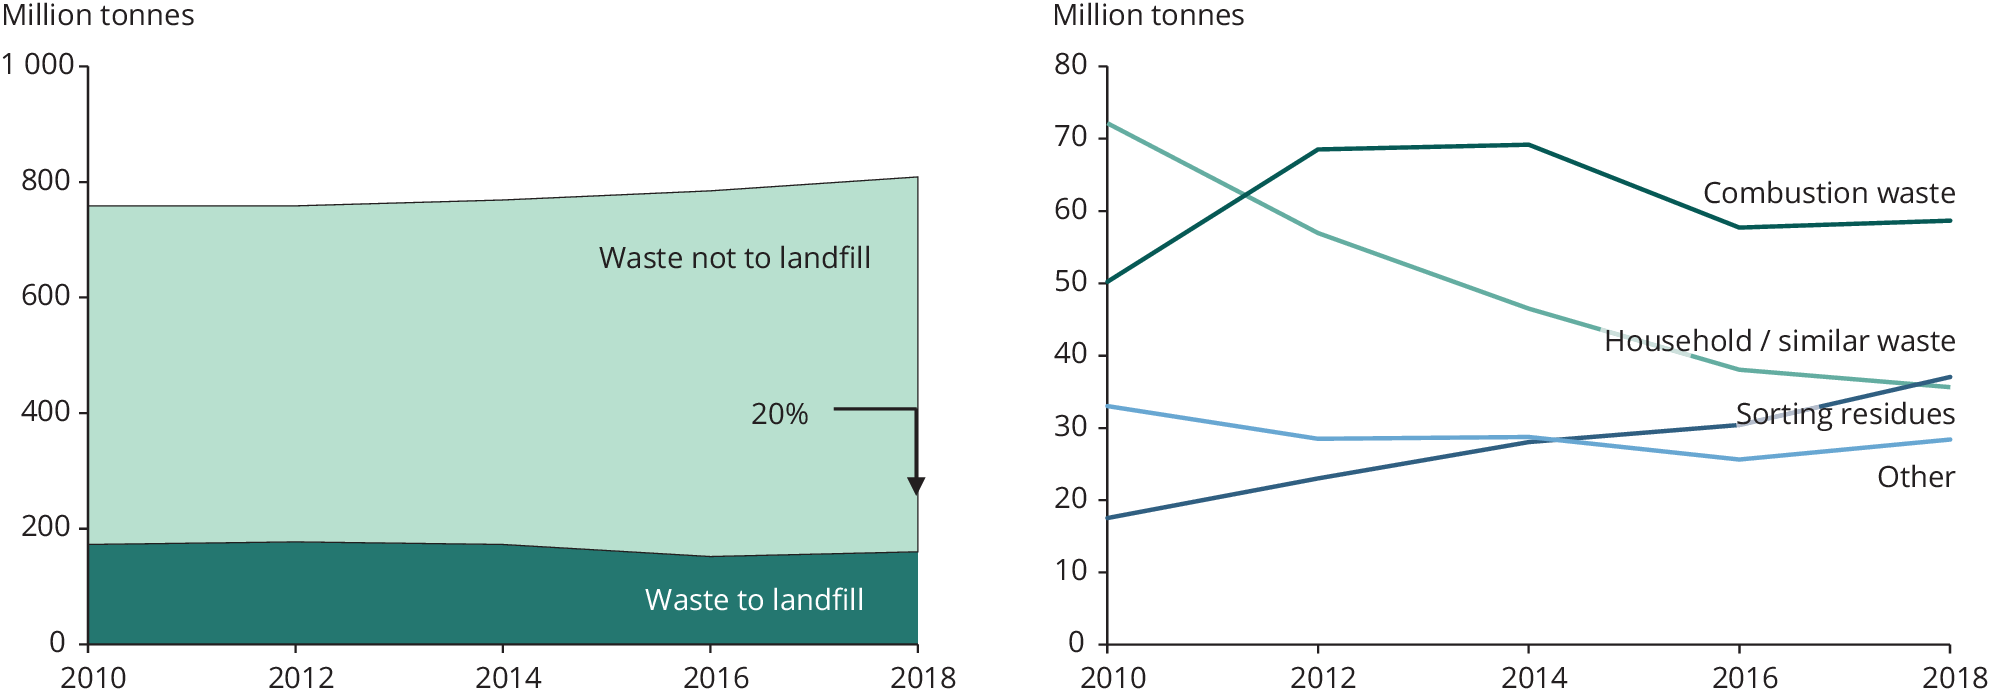 Amounts and share of waste deposited in landfills, by type of waste category, EU-27